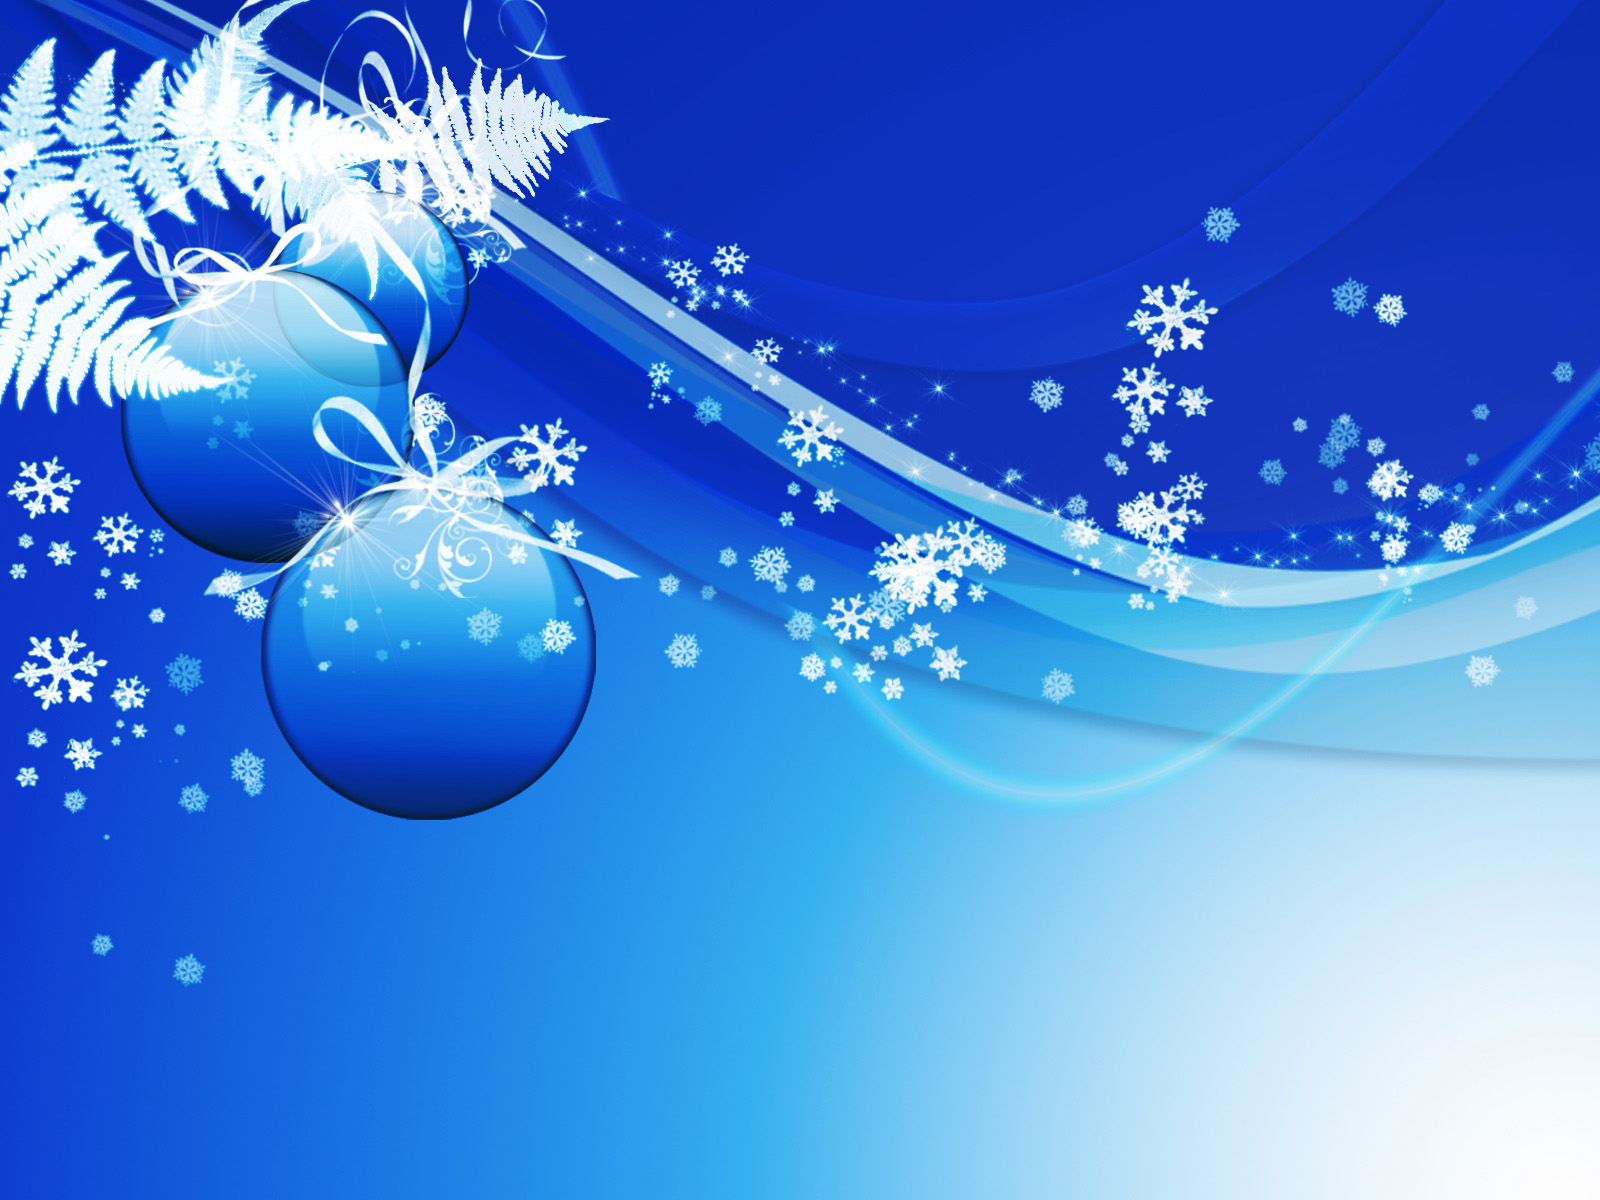 for the holiday with original winter Christmas holiday wallpapers ...